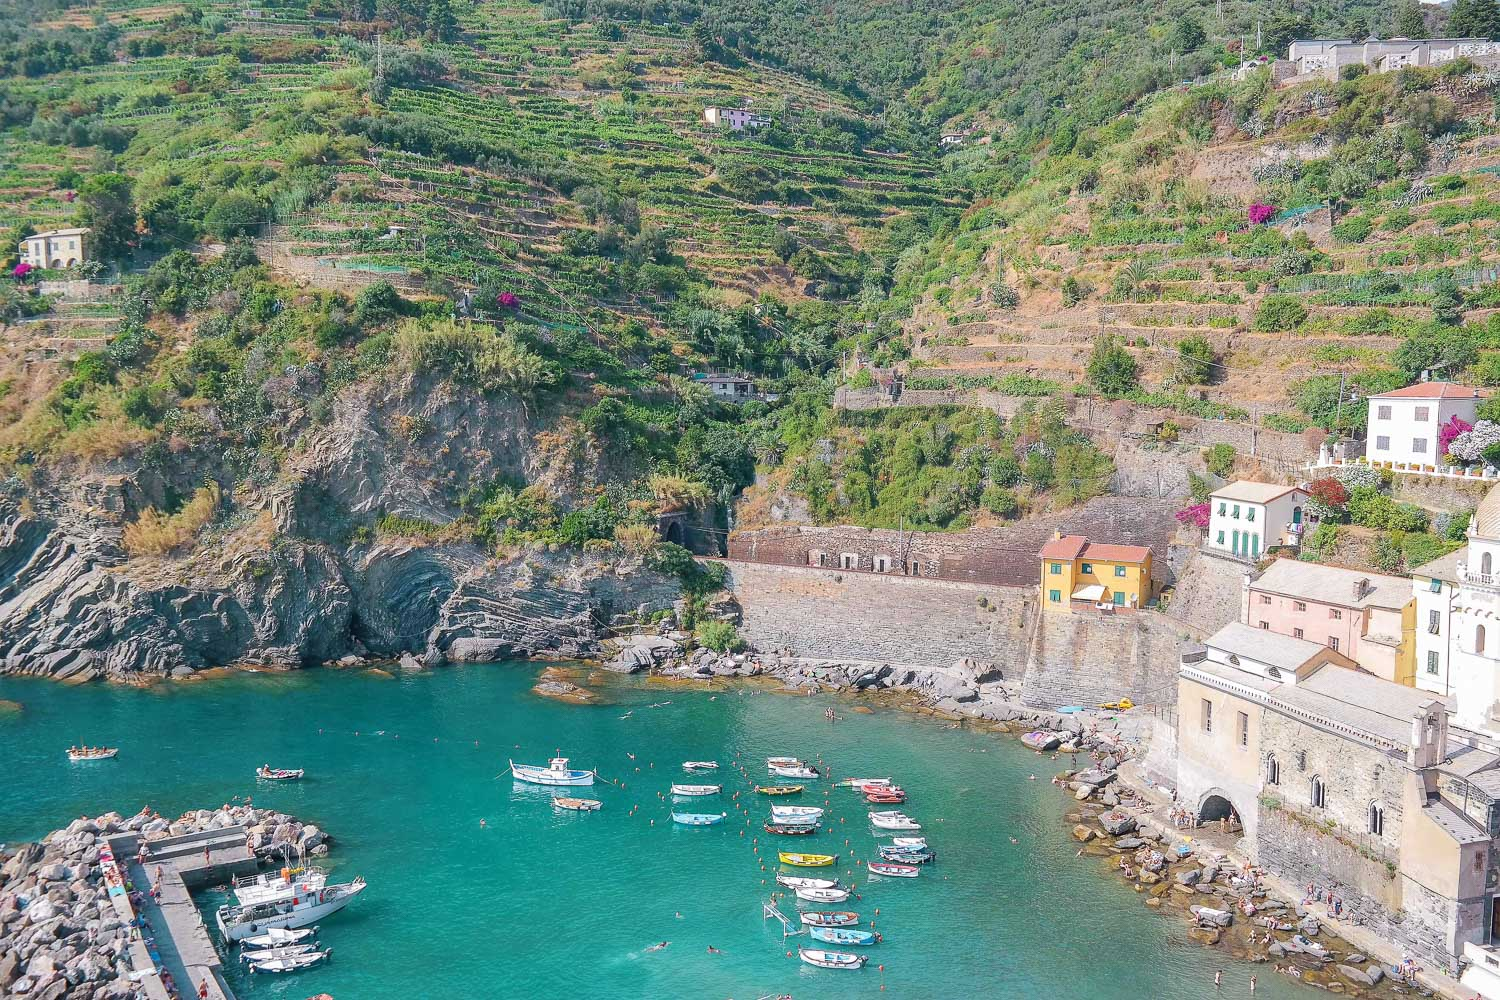 Looking down at the Vernazza, Italy harbor